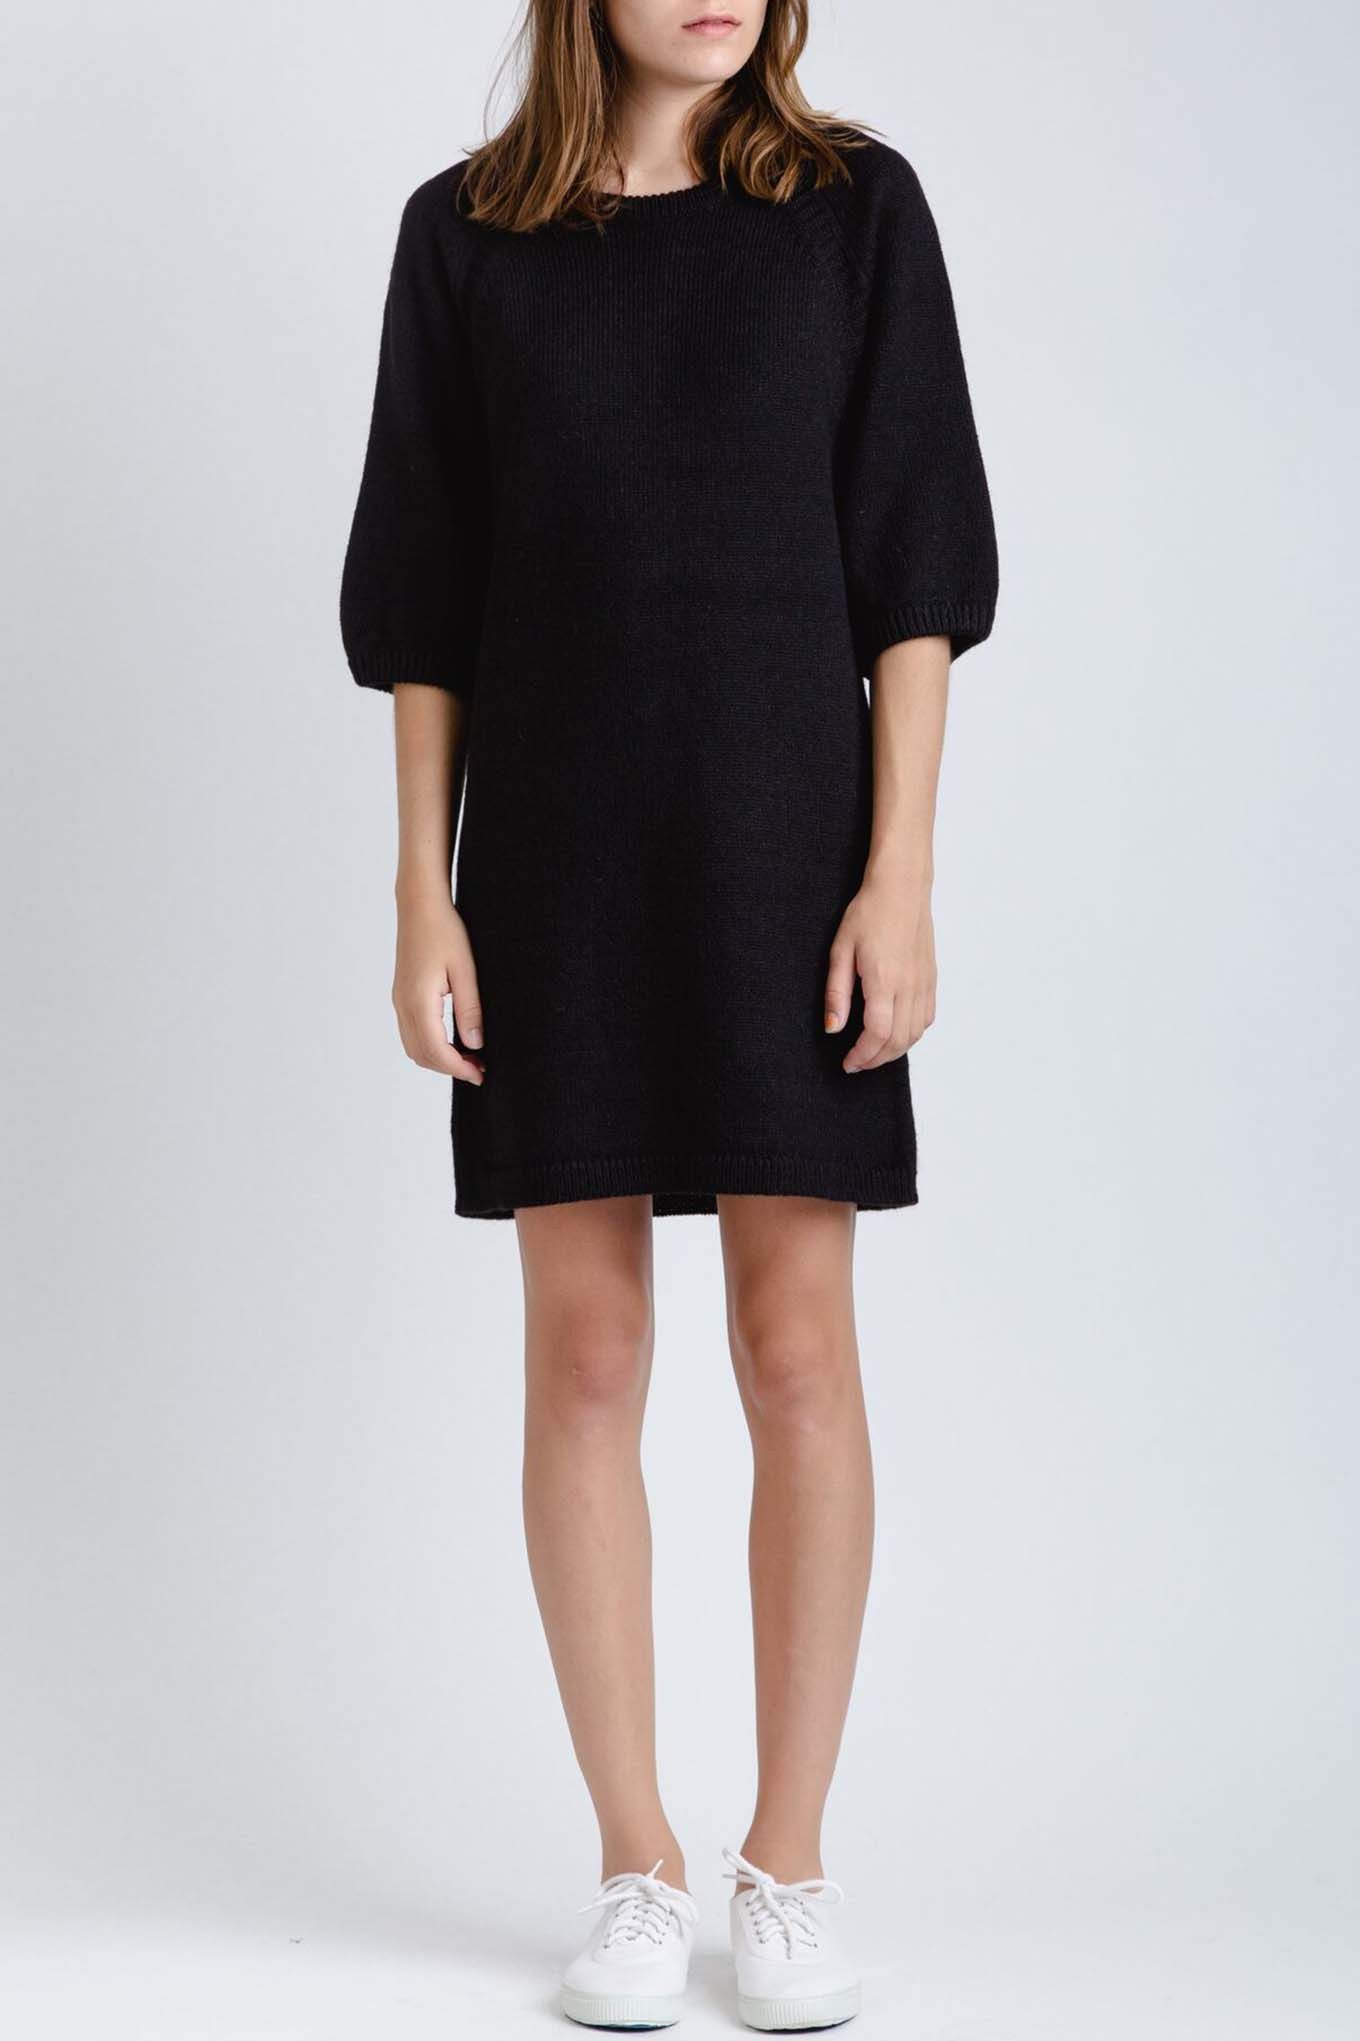 Sita Murt Sweater Dress